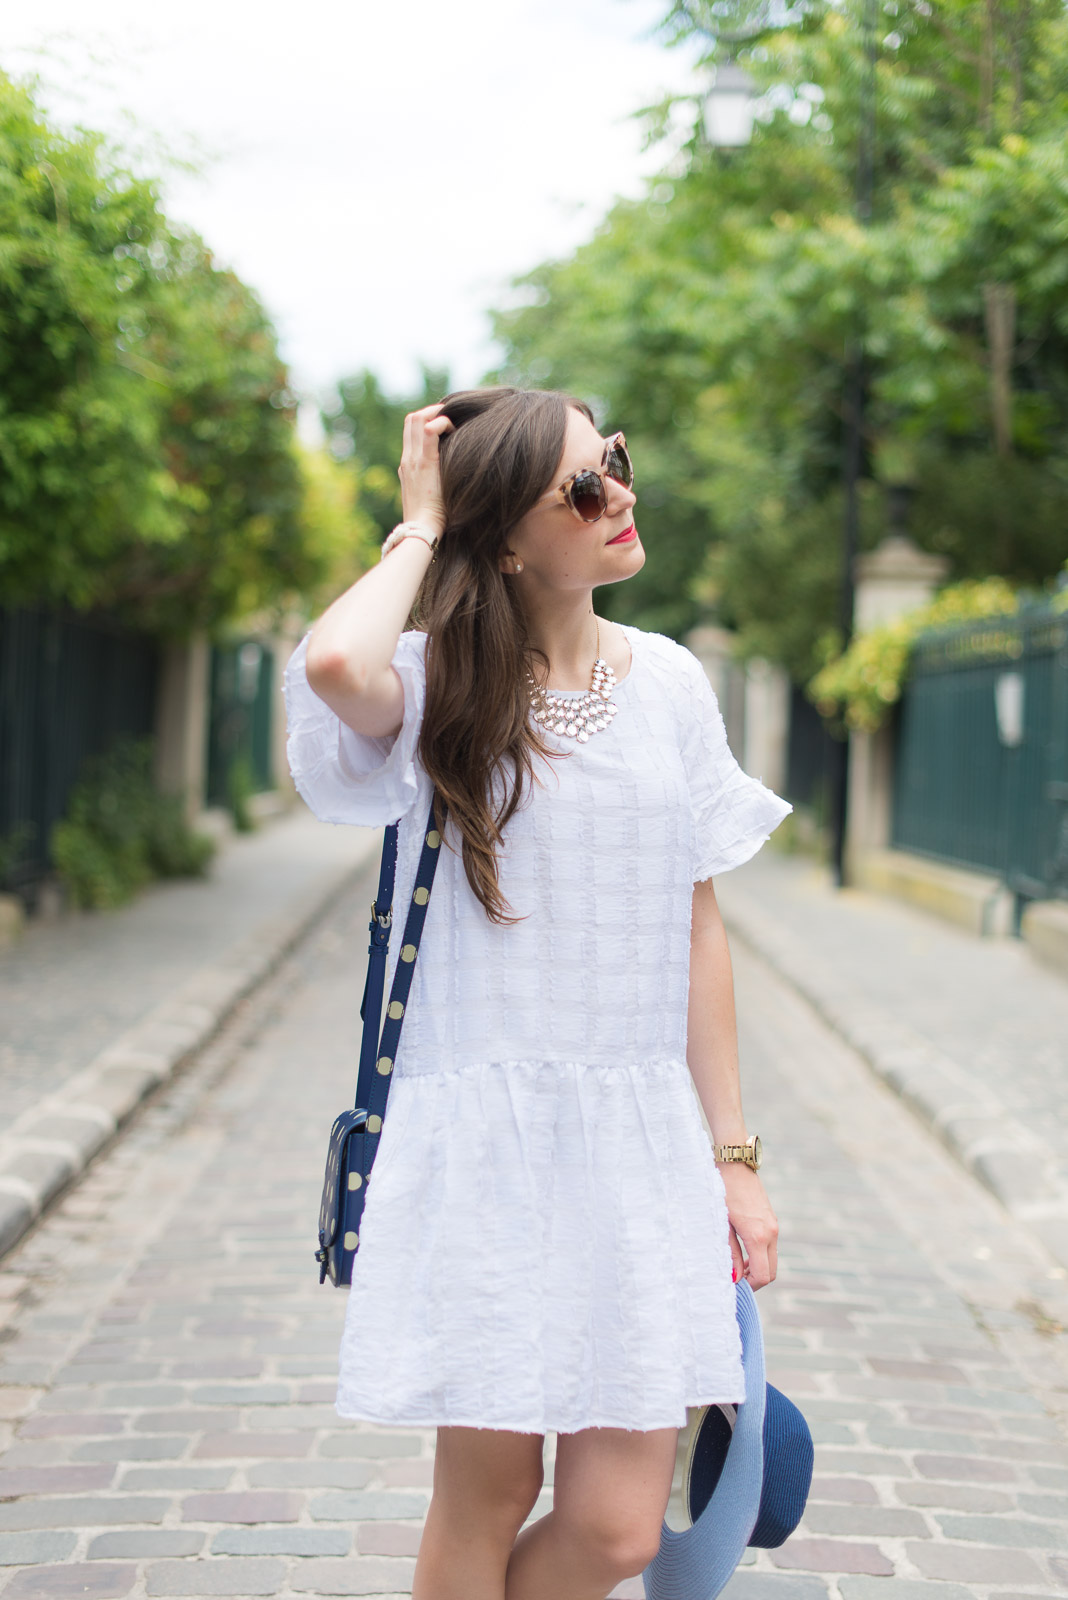 Blog Mode And The City looks Anthropologie concours inside-7